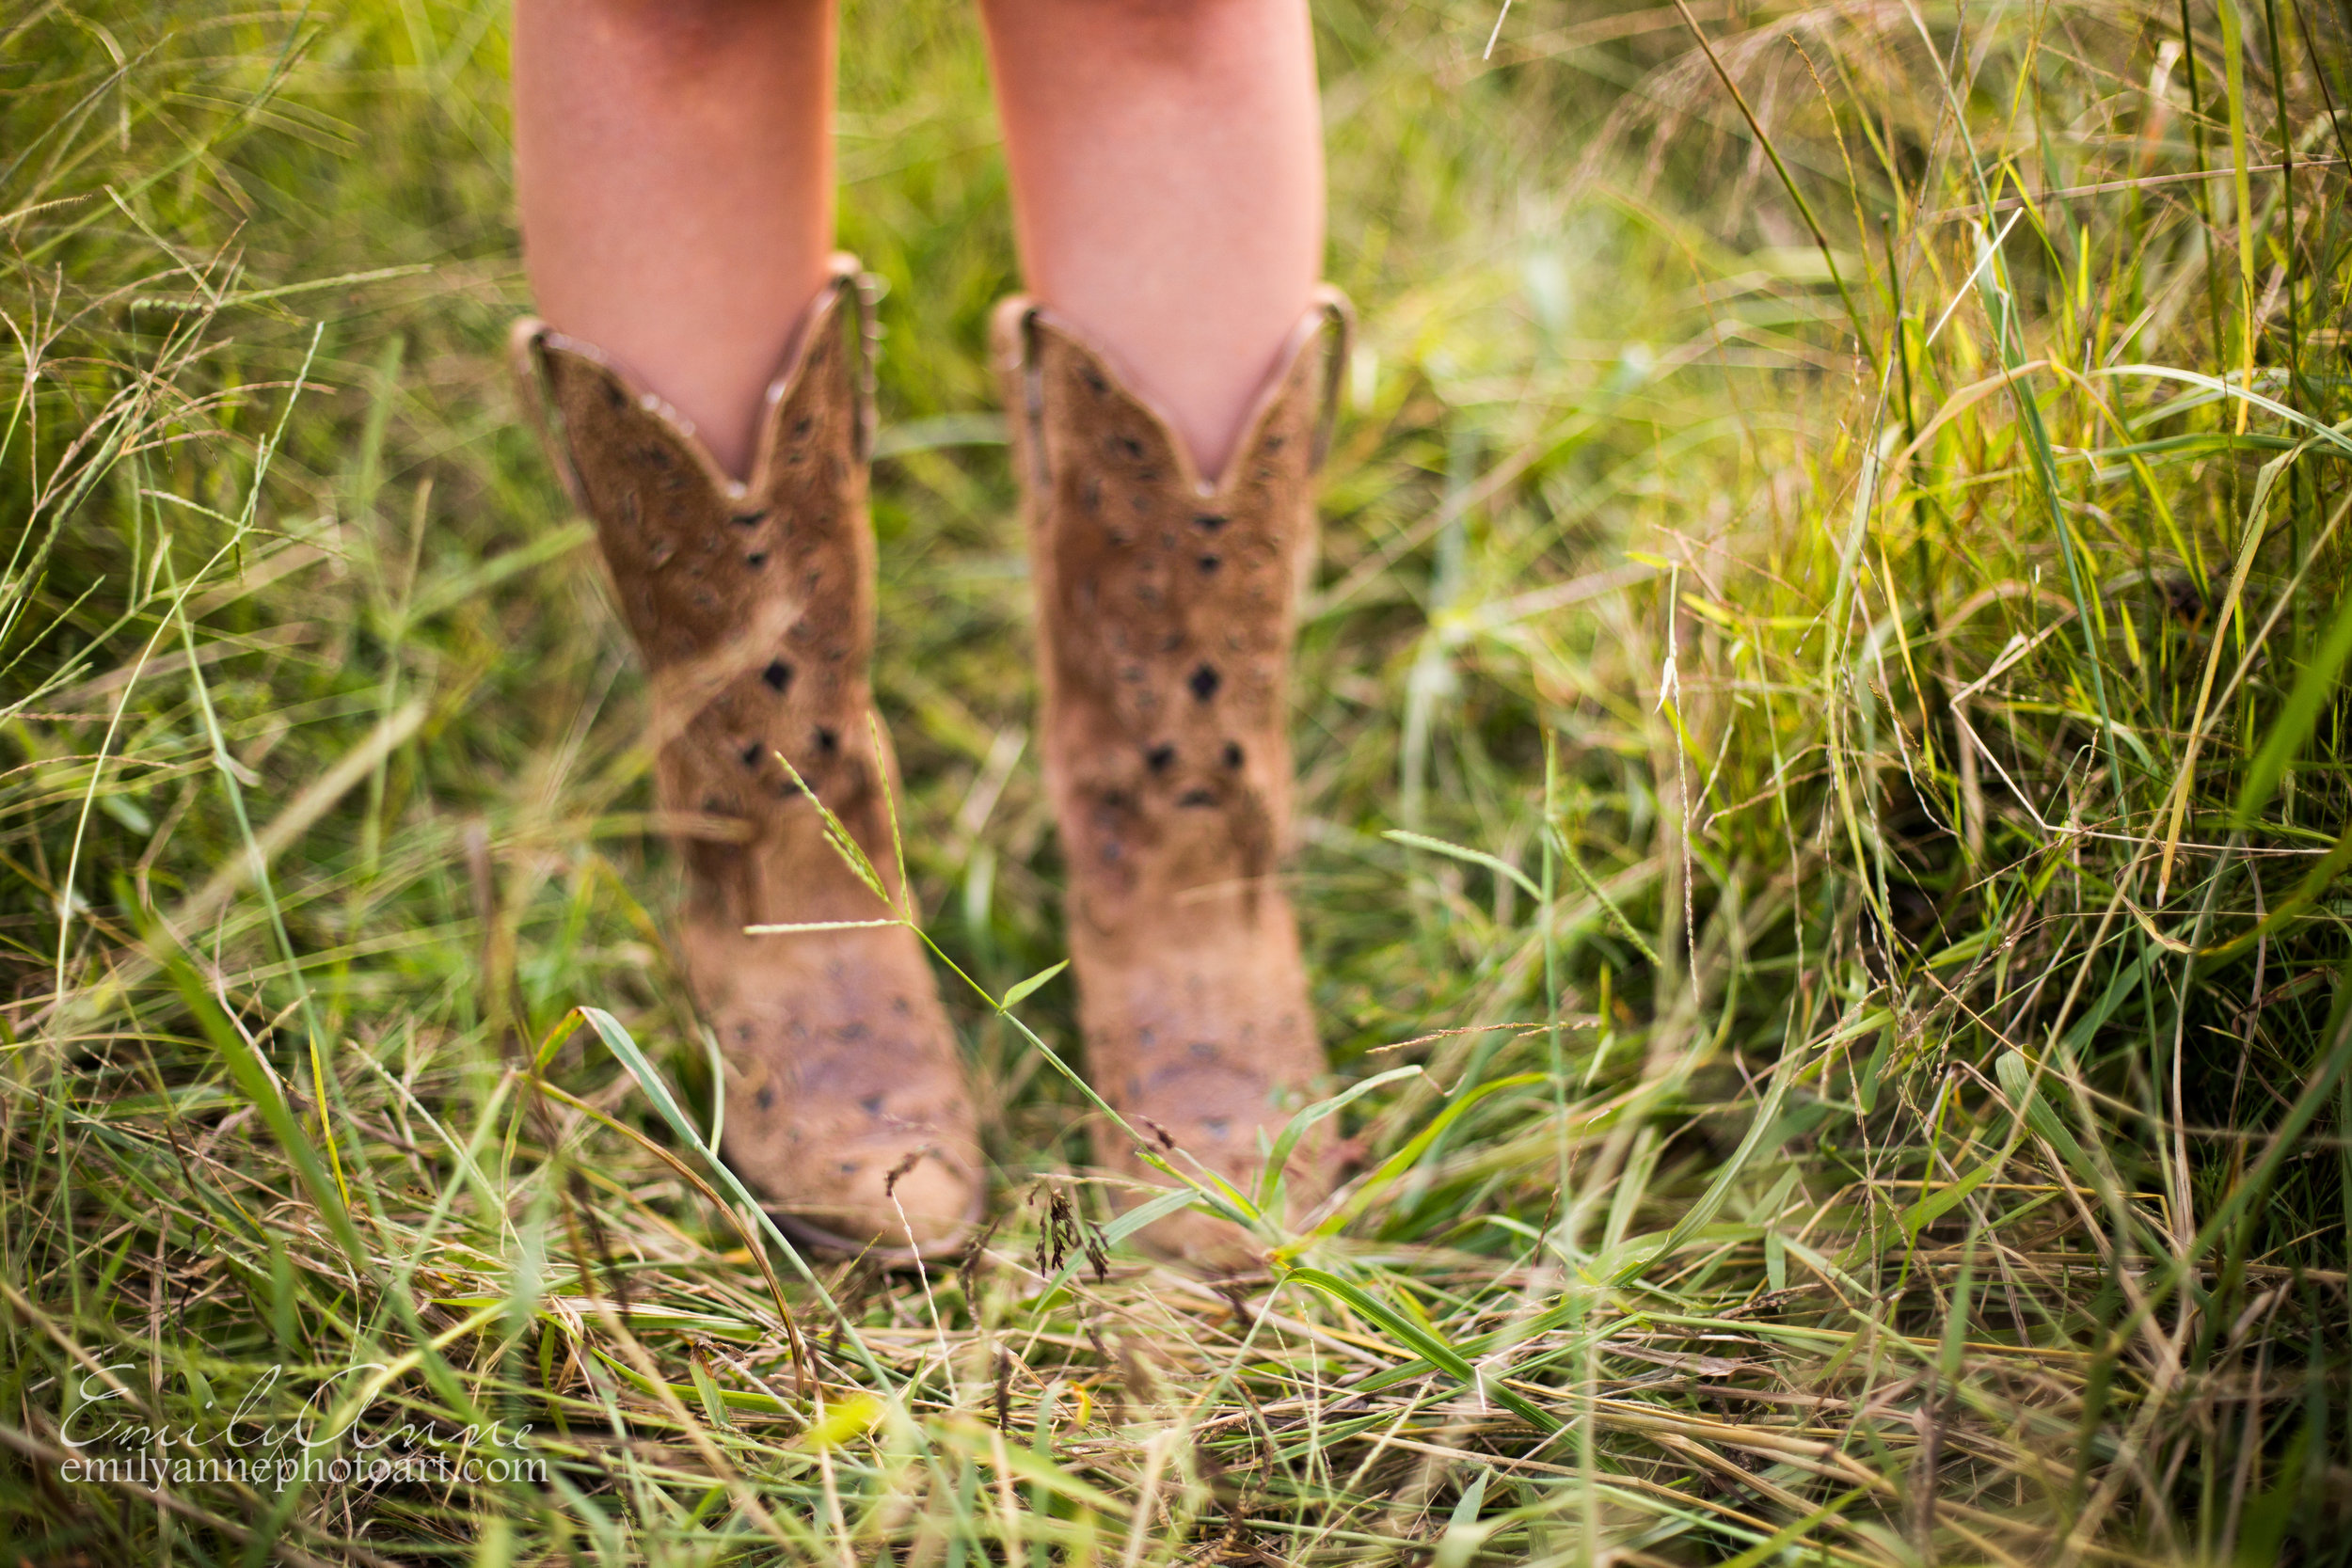 cowboy boots in senior portrait shoot- details